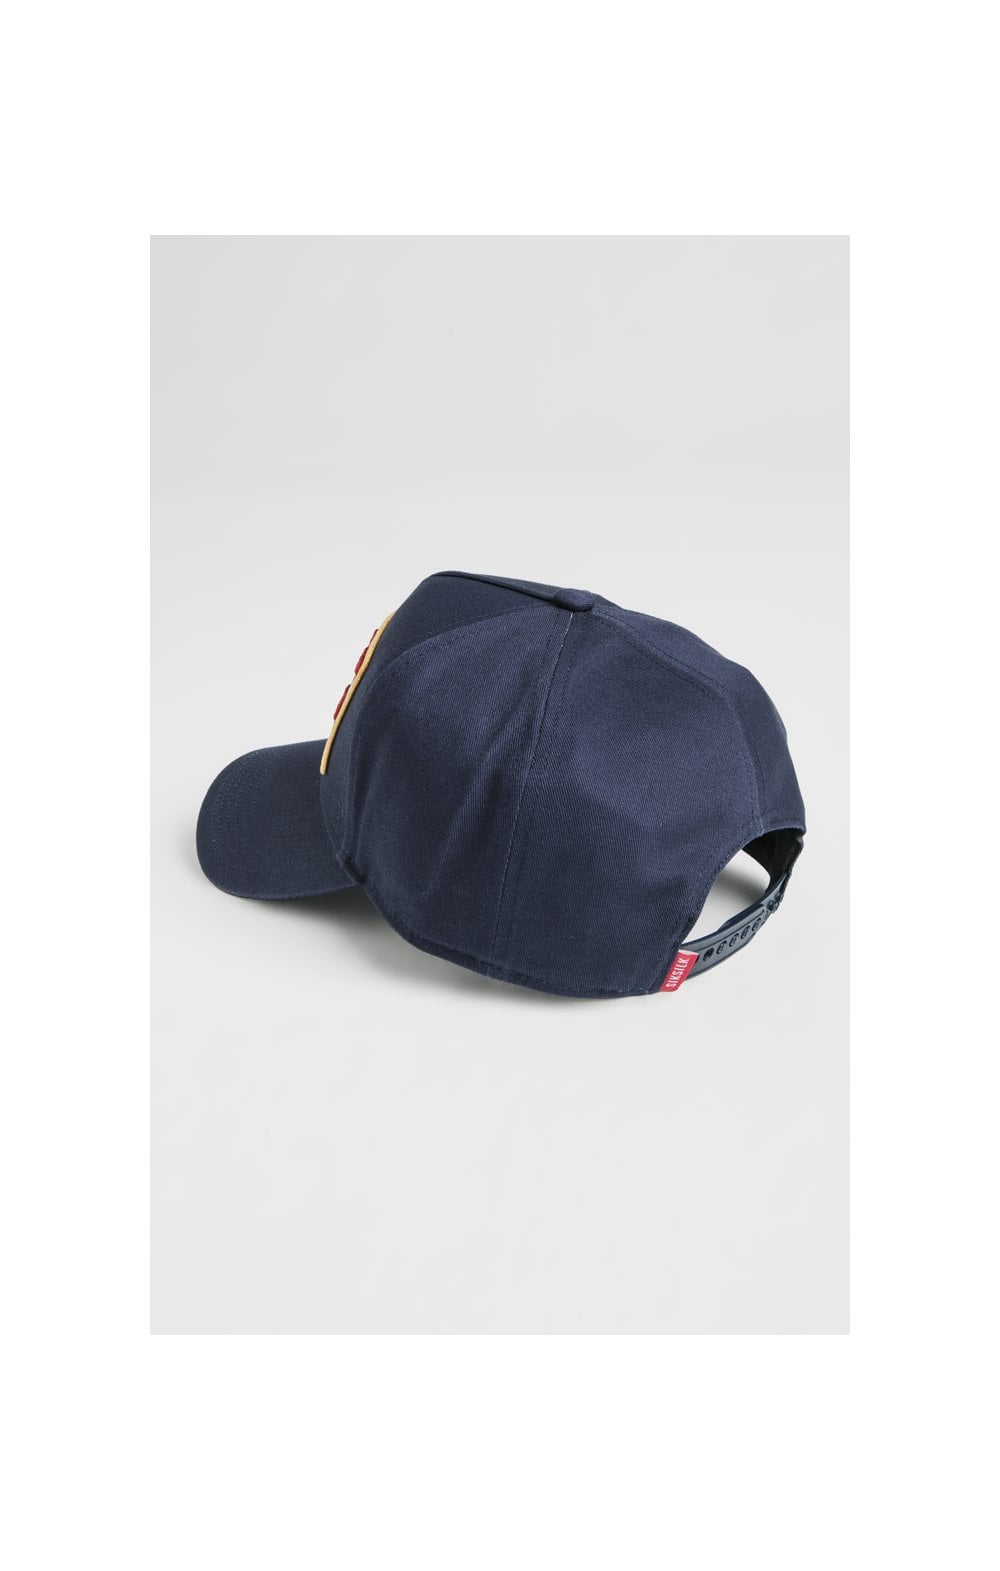 Load image into Gallery viewer, SikSilk Patch Full Trucker - Navy (4)